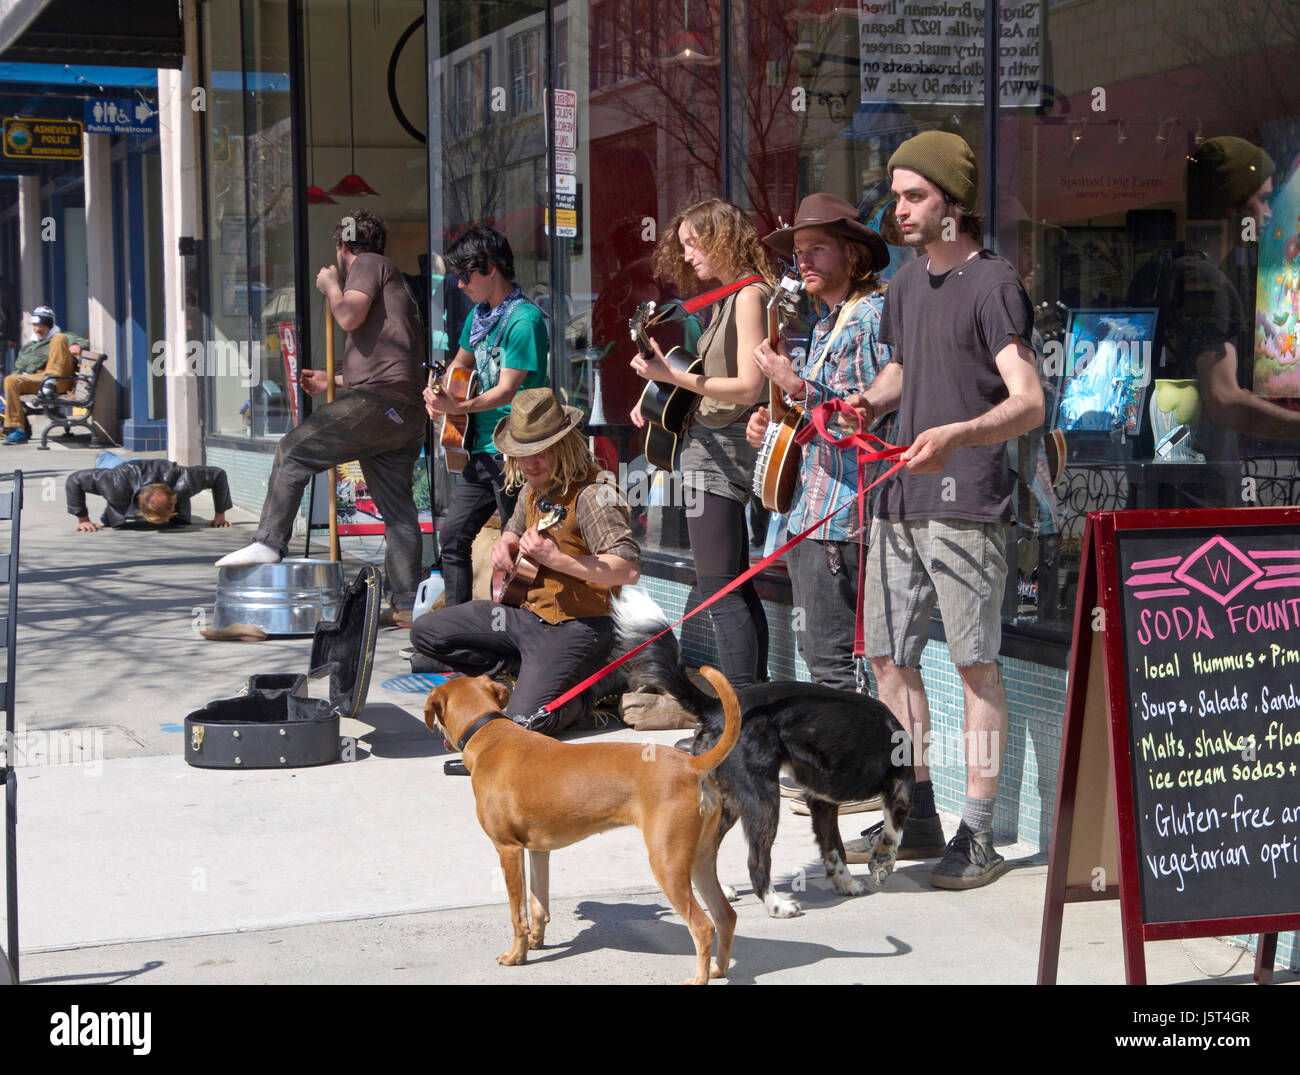 Asheville, North Carolina, USA - March 24, 2017:  Buskers play music for tips on the street in front of the historic - Stock Image